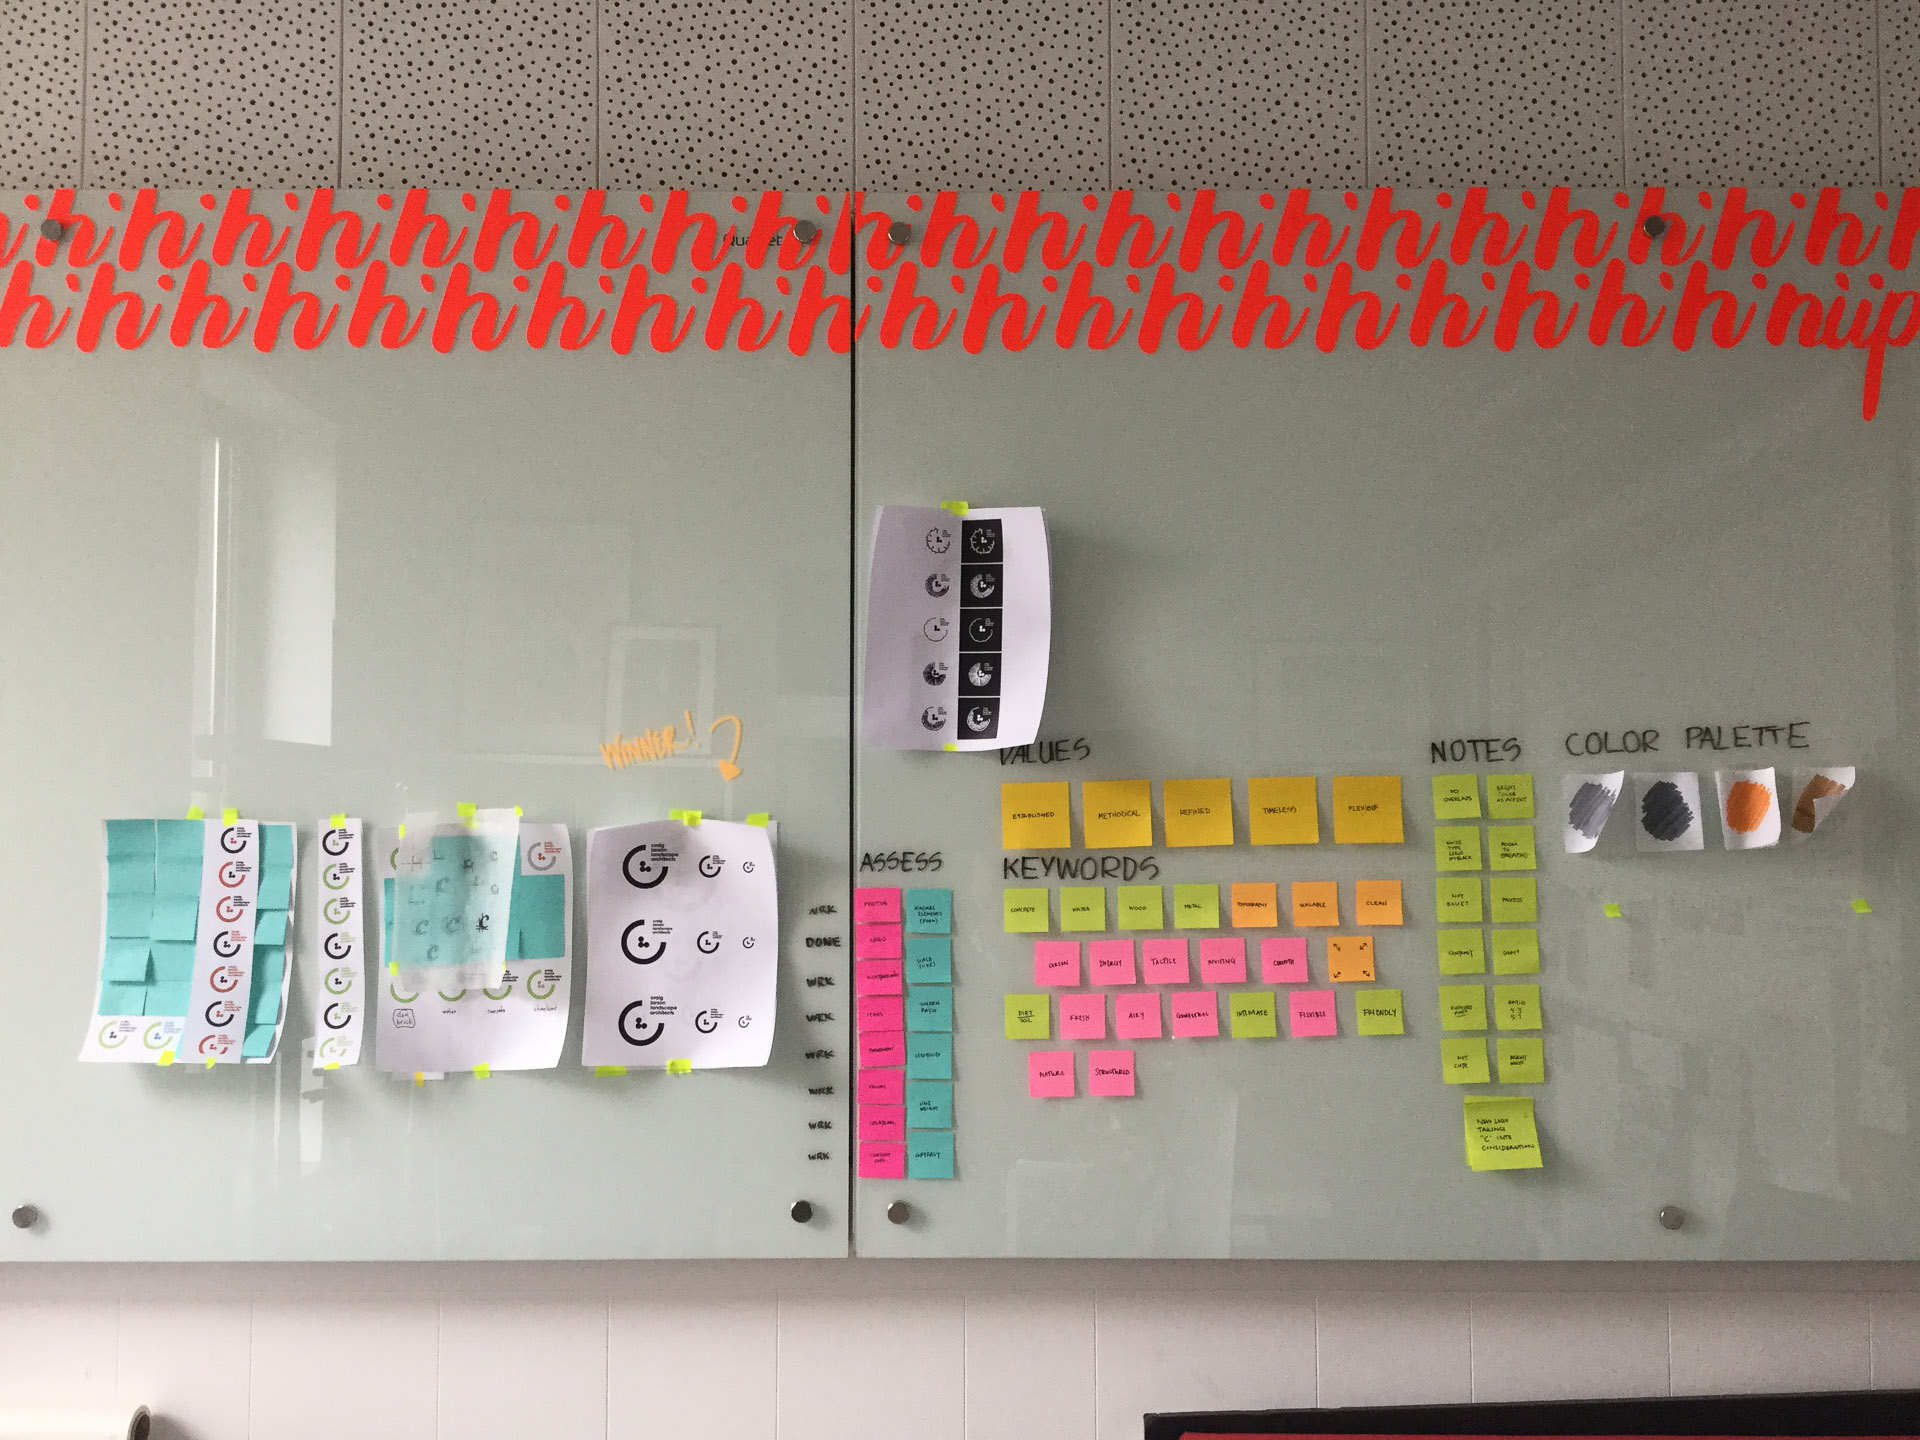 White board covered in printed logo concepts and colorful post-it notes used in ideation